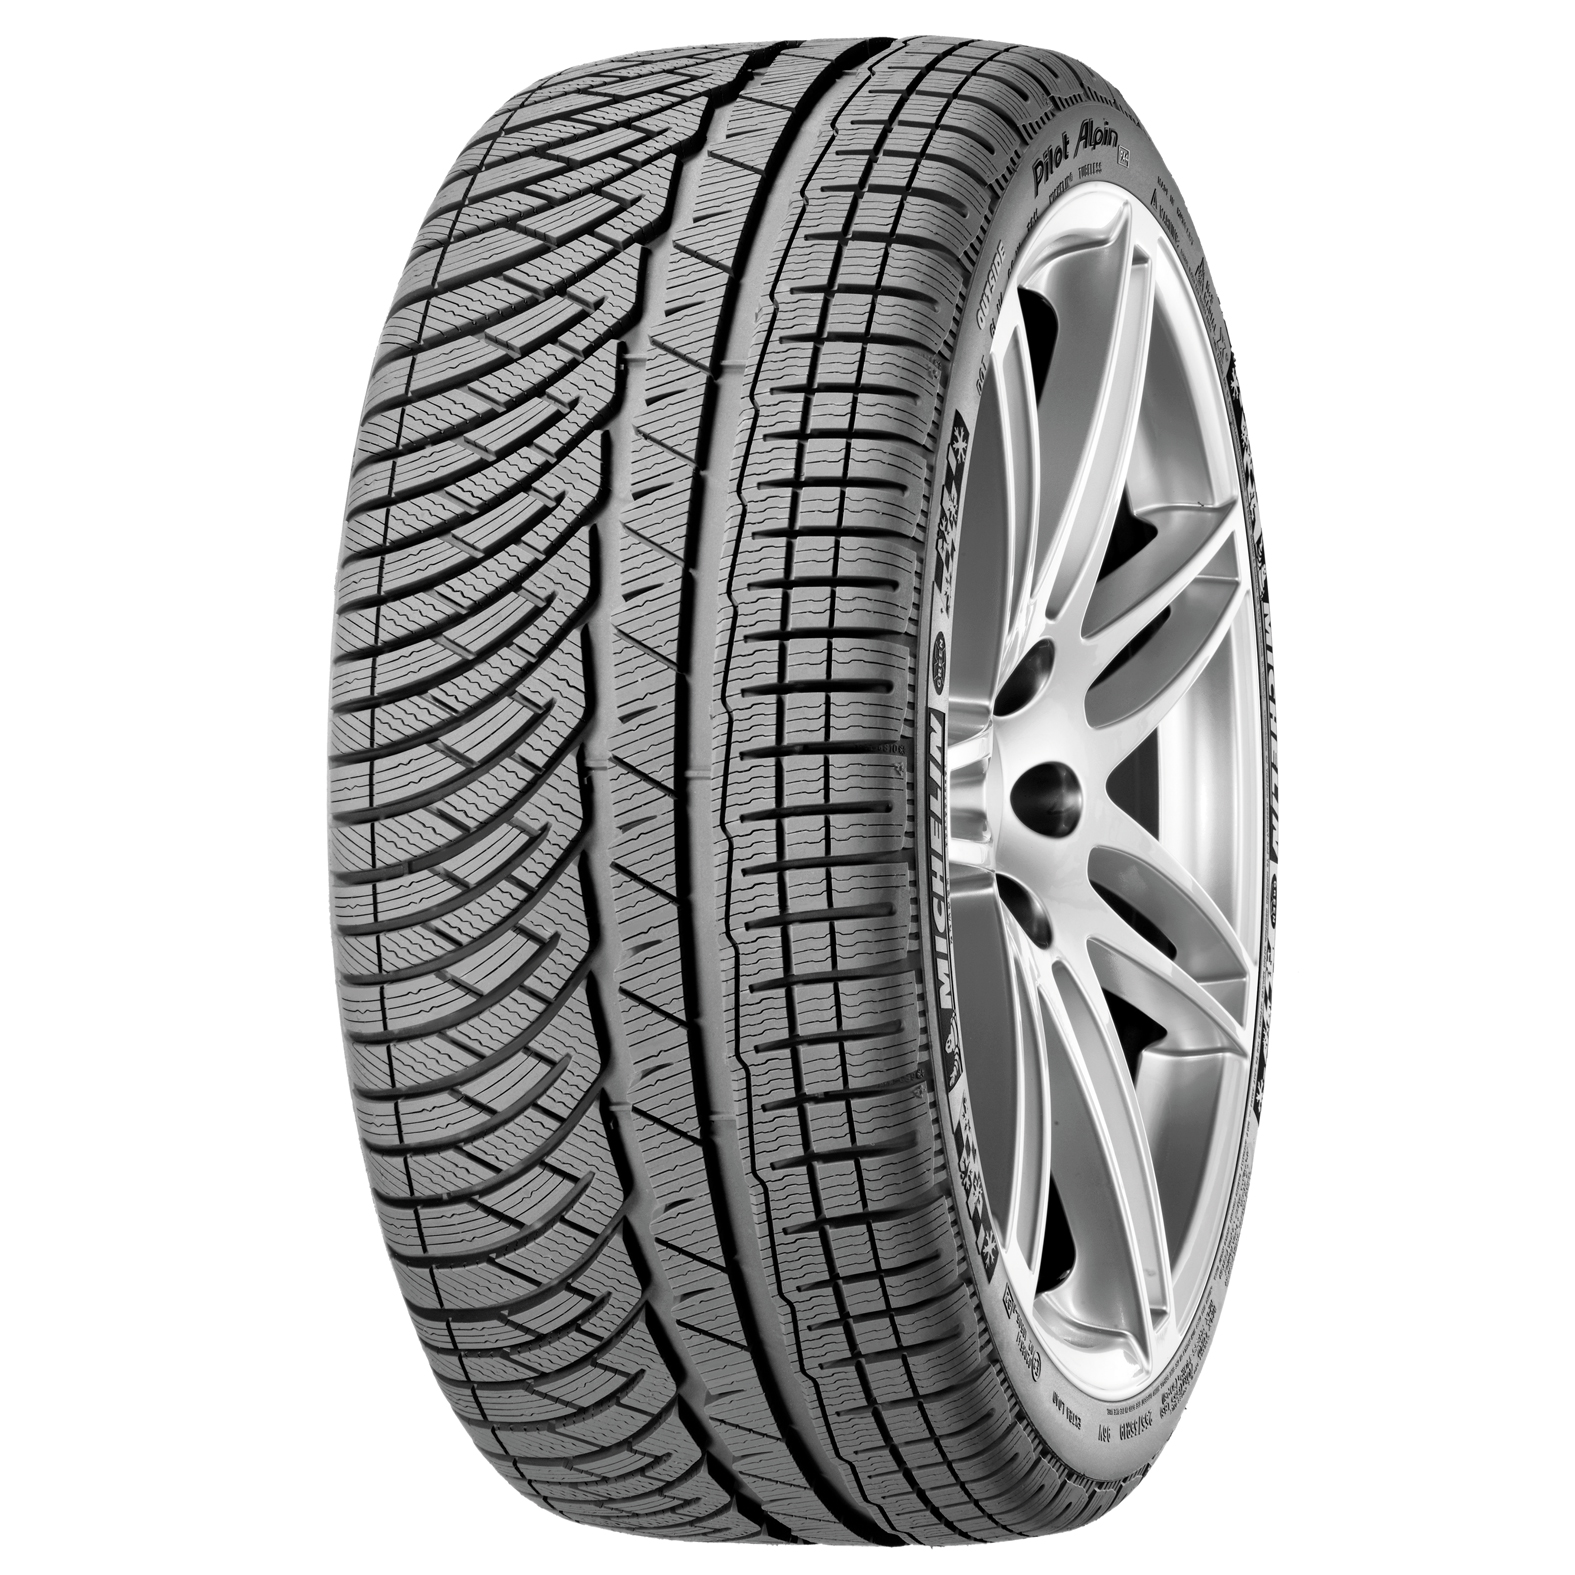 Michelin PILOT ALPIN PA4 tire - angle